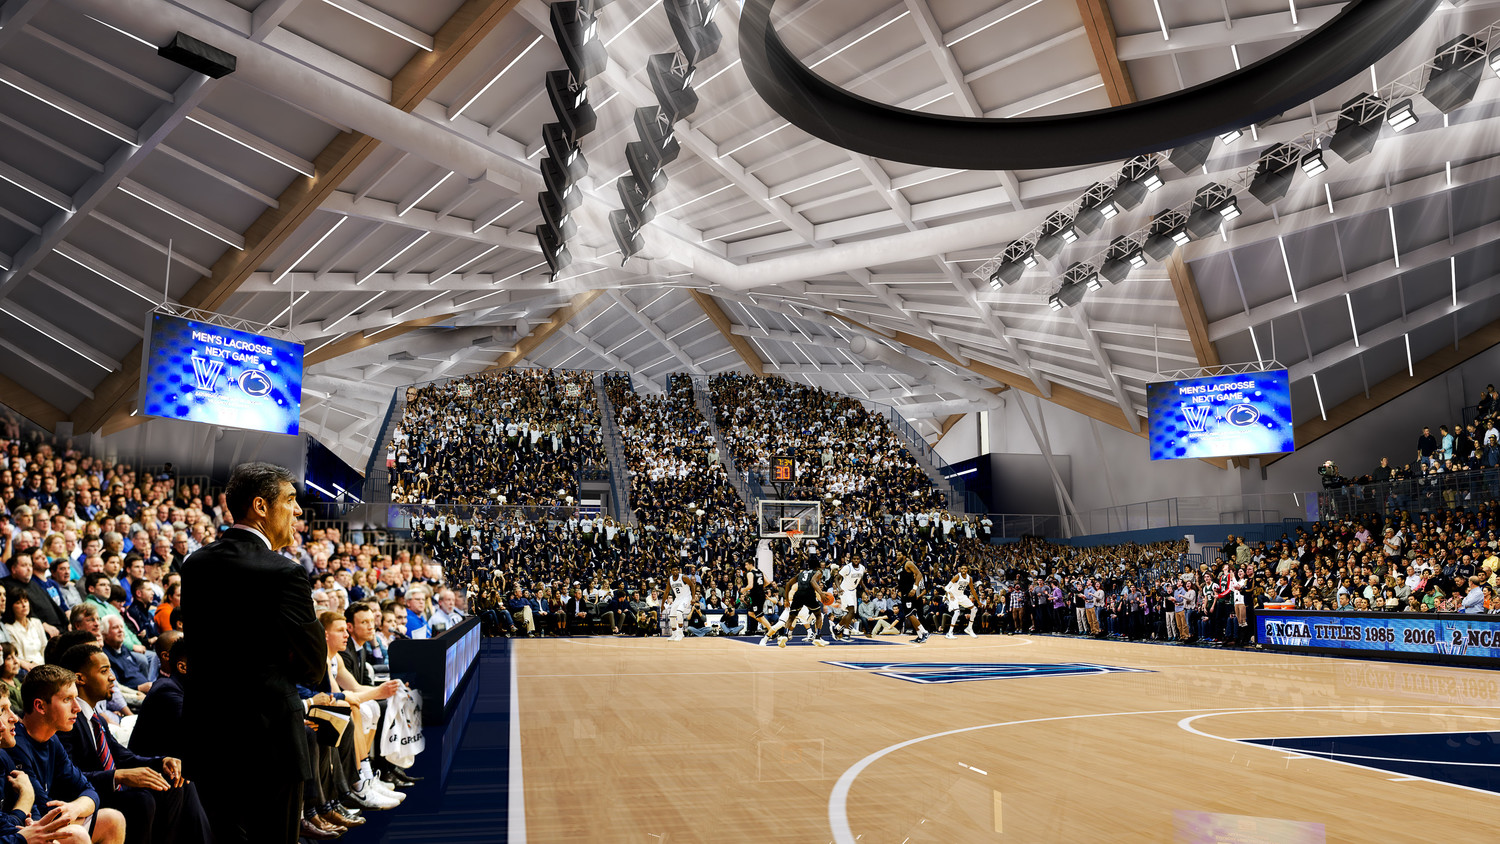 Villanova University selects ANC to install complete video and audio system at Finneran Pavilion